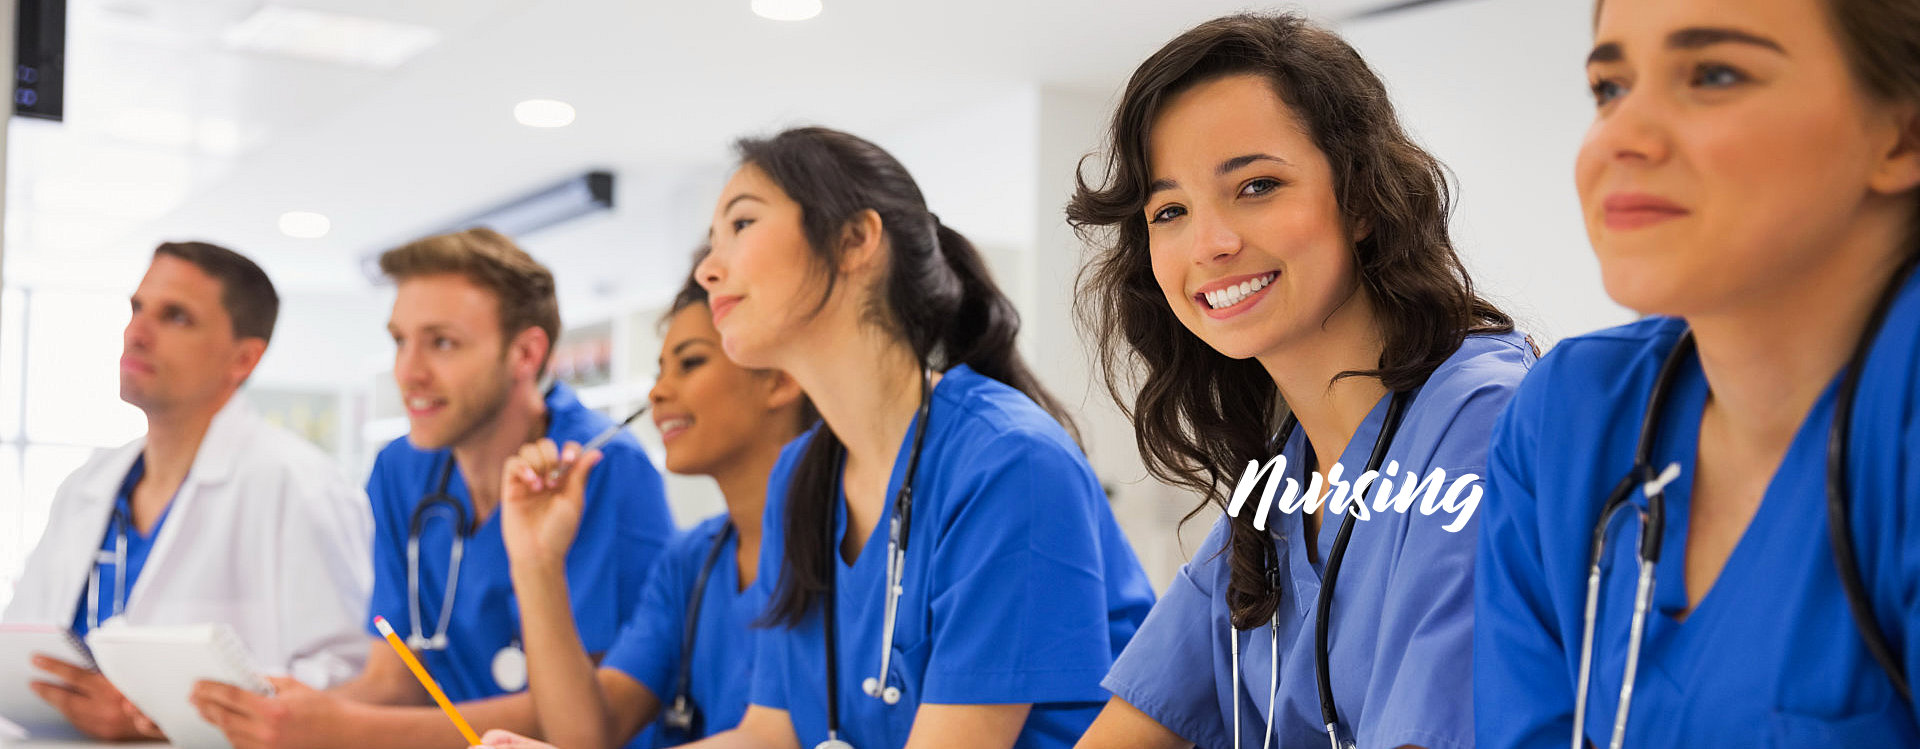 nurses listening to a session